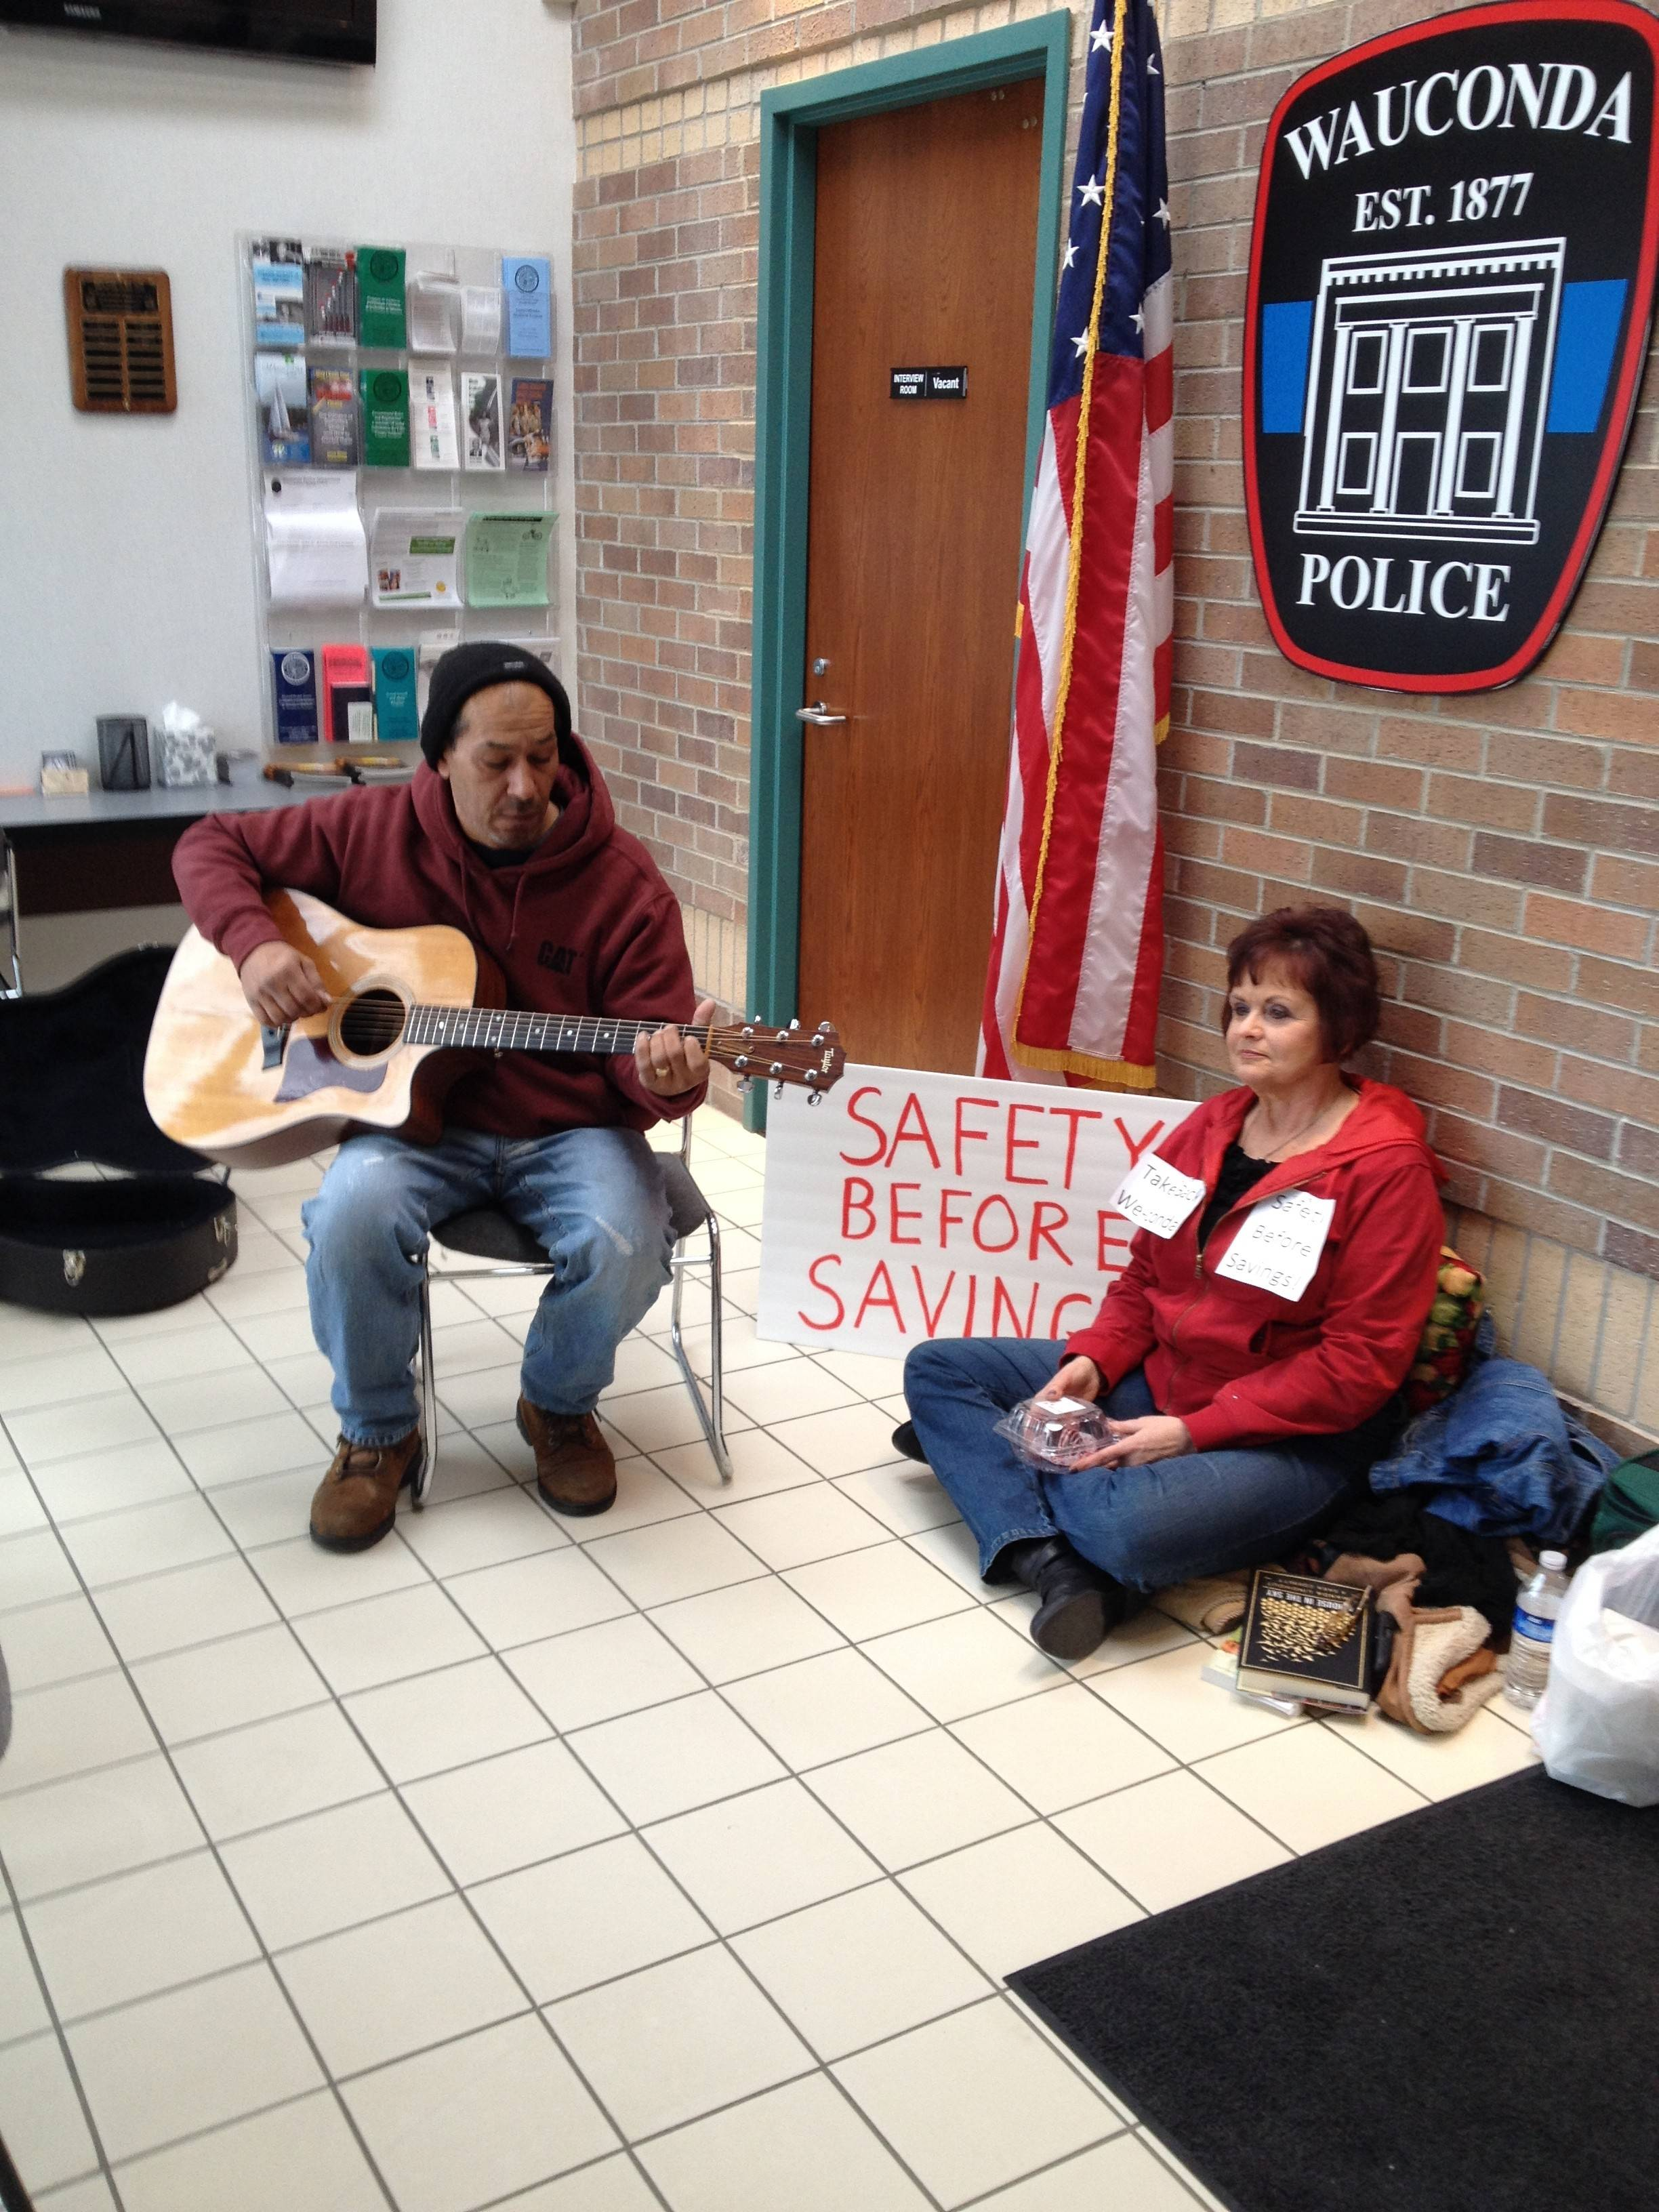 Protesters stage sit-in over Wauconda 911 outsourcing